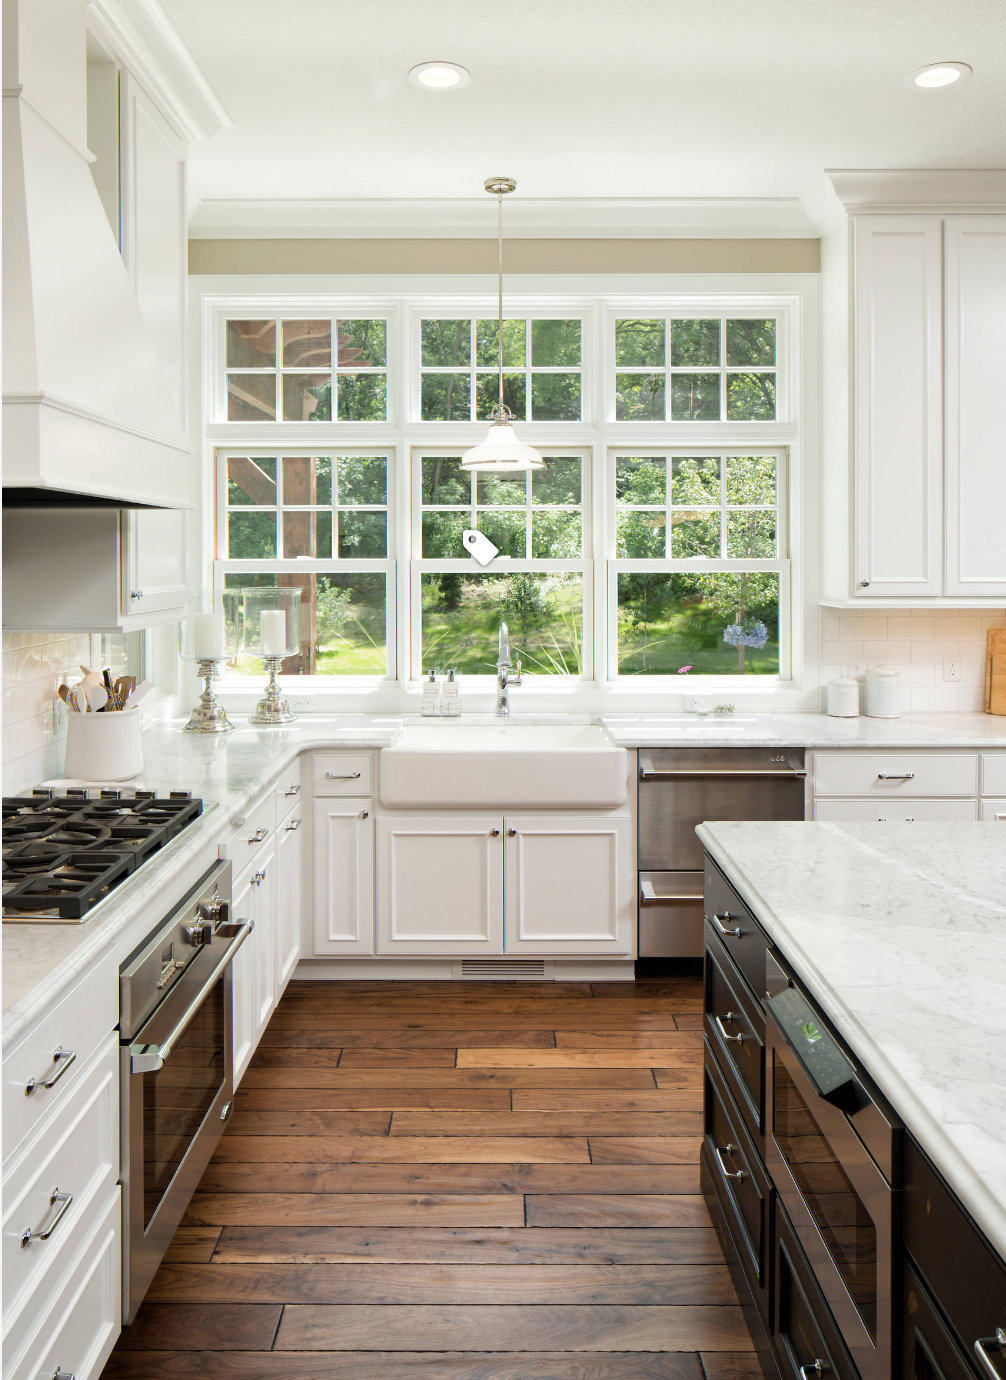 love this floor color with the white cabinets (With images ...